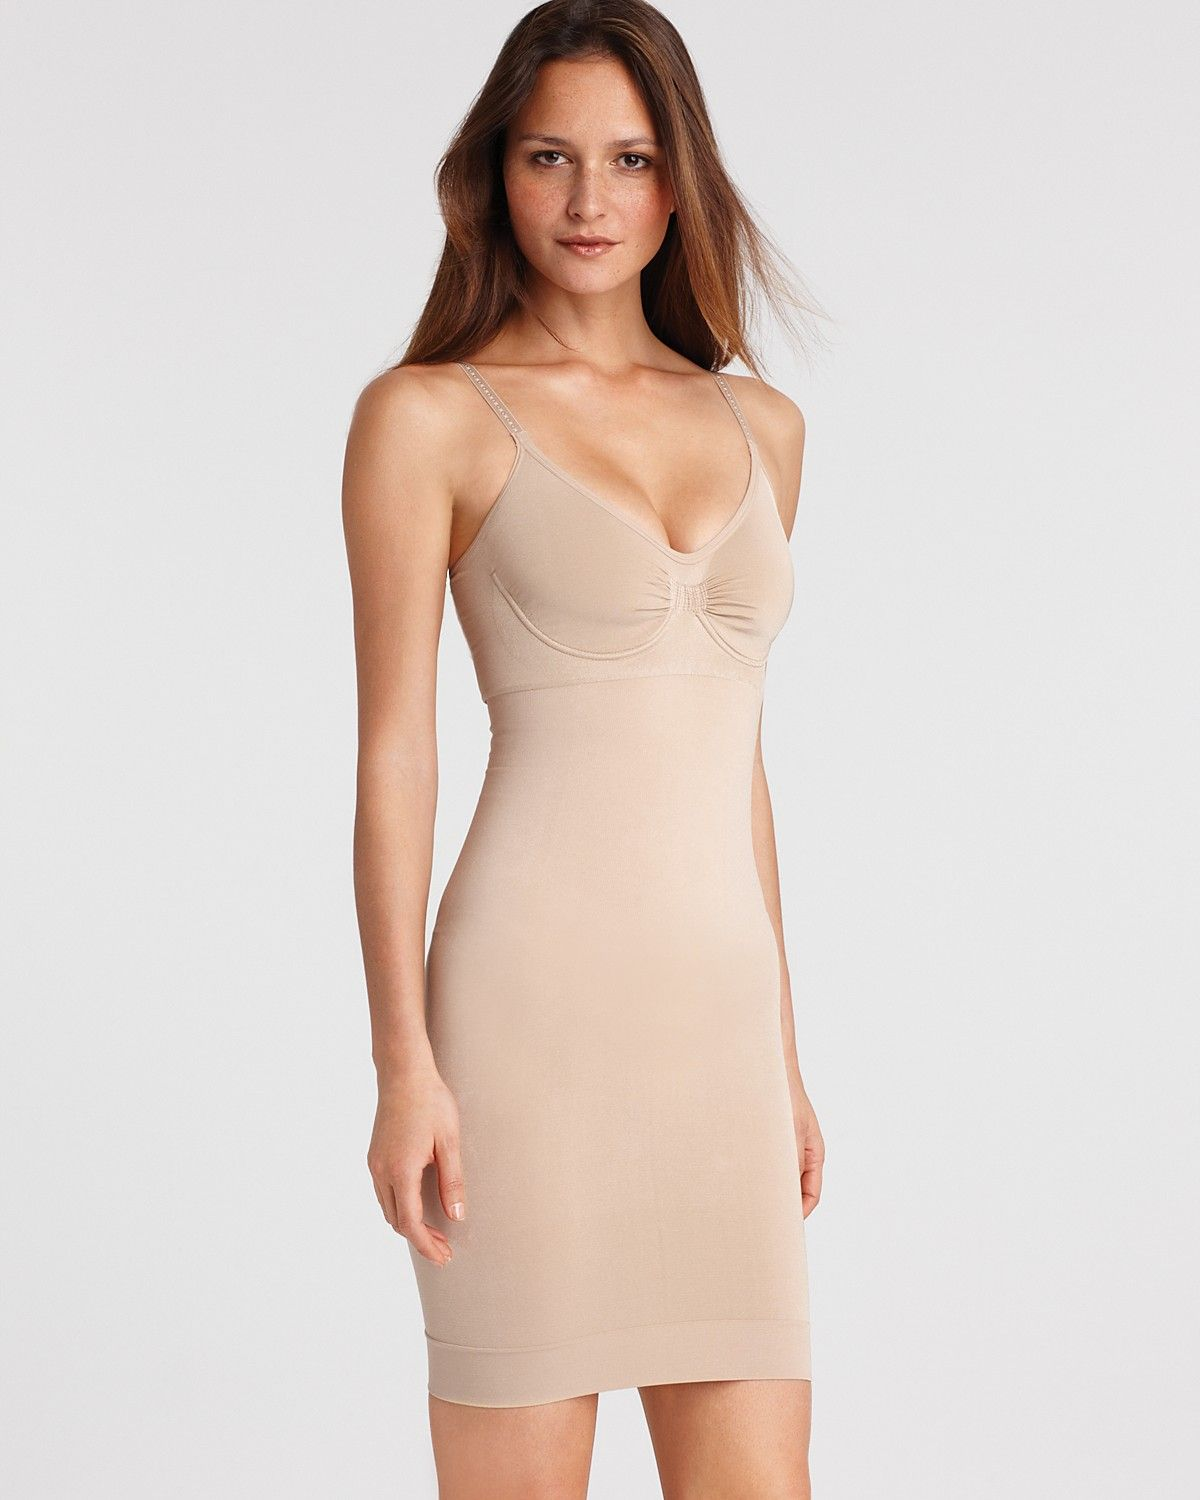 Never Too Skinny For Spanx Shapewear